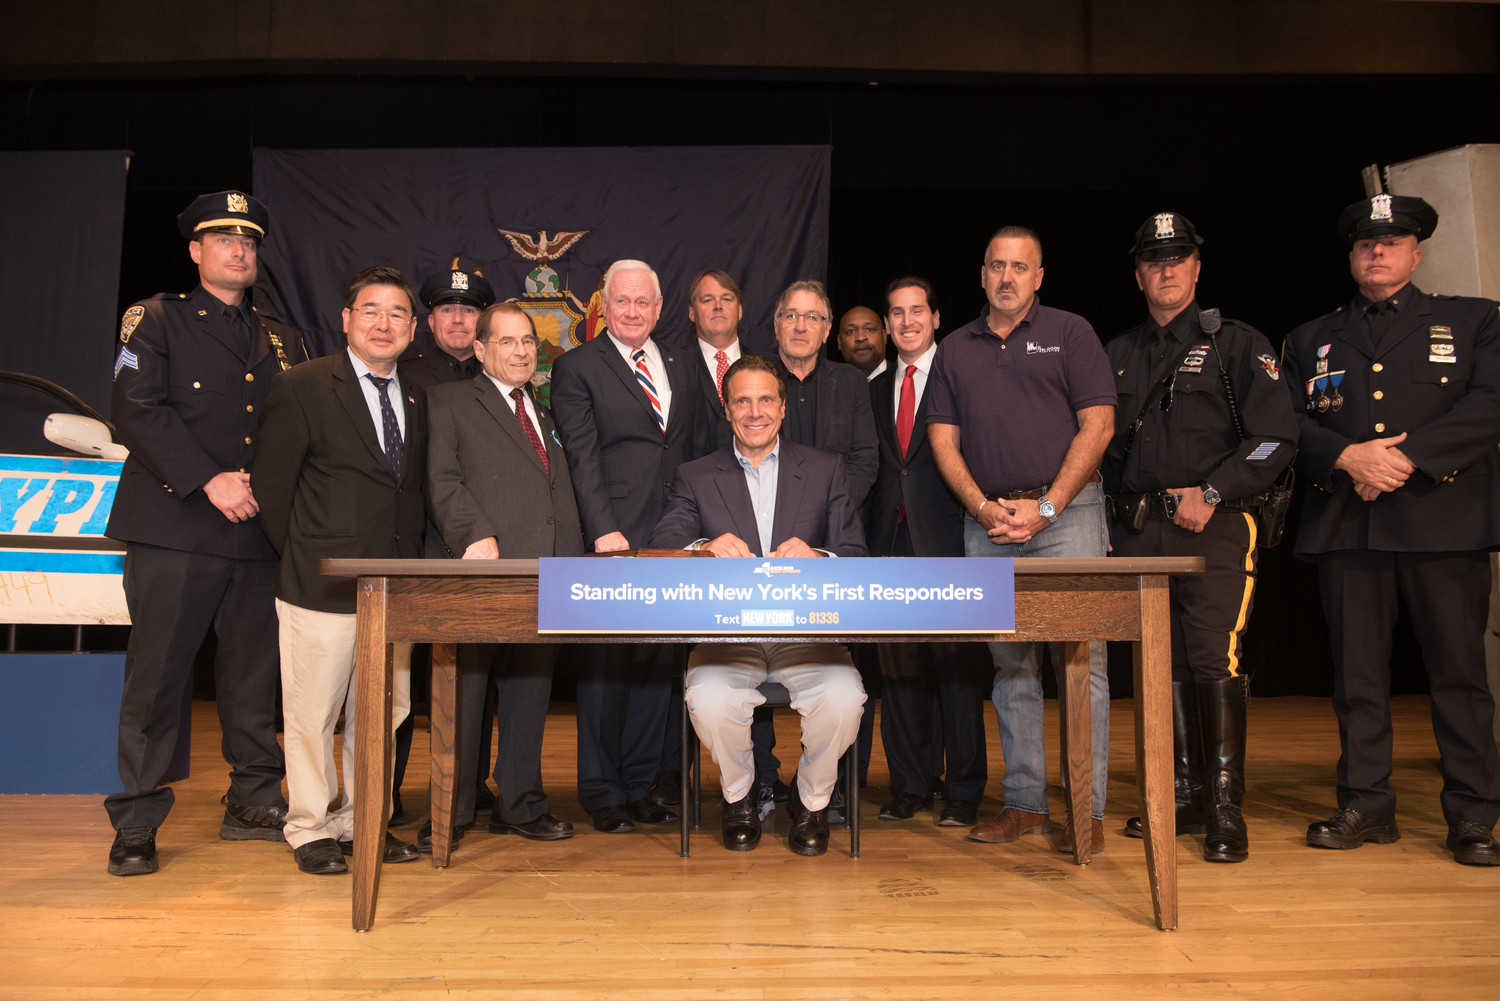 Gov. Andrew Cuomo signed a bill last year to grant unlimited sick leave to all government workers outside New York City who responded to the World Trade Center attacks on Sept. 11, 2001. He was joined by senators from both sides of the aisle, as well as first responders.